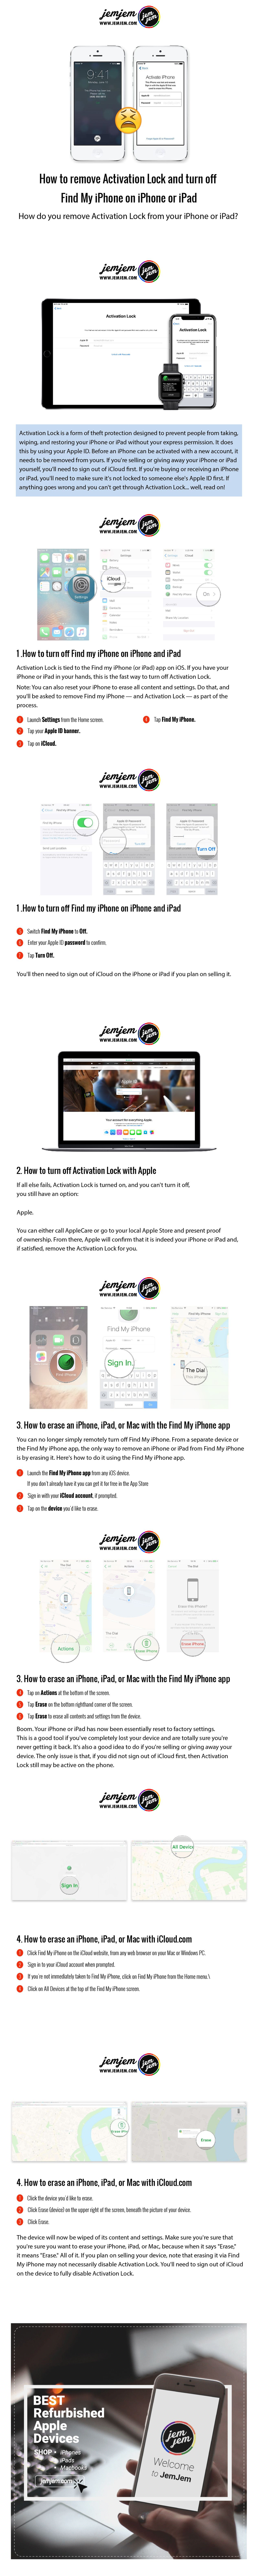 How To Remove Activation Lock And Turn Off Find My Iphone On Iphone Or Ipad How To Remove Turn Off Iphone